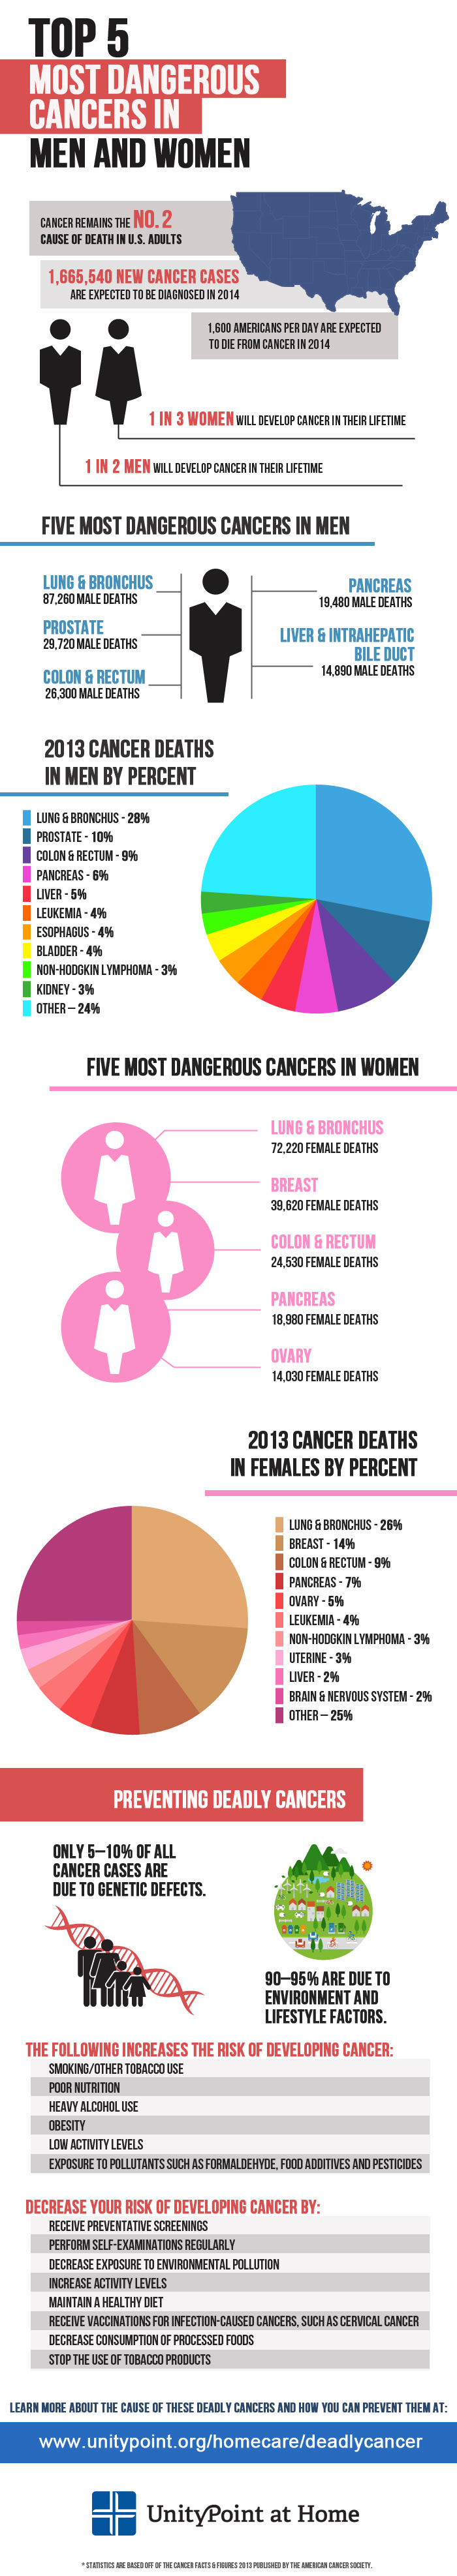 Top Five Most Dangerous Cancers in Men and Women